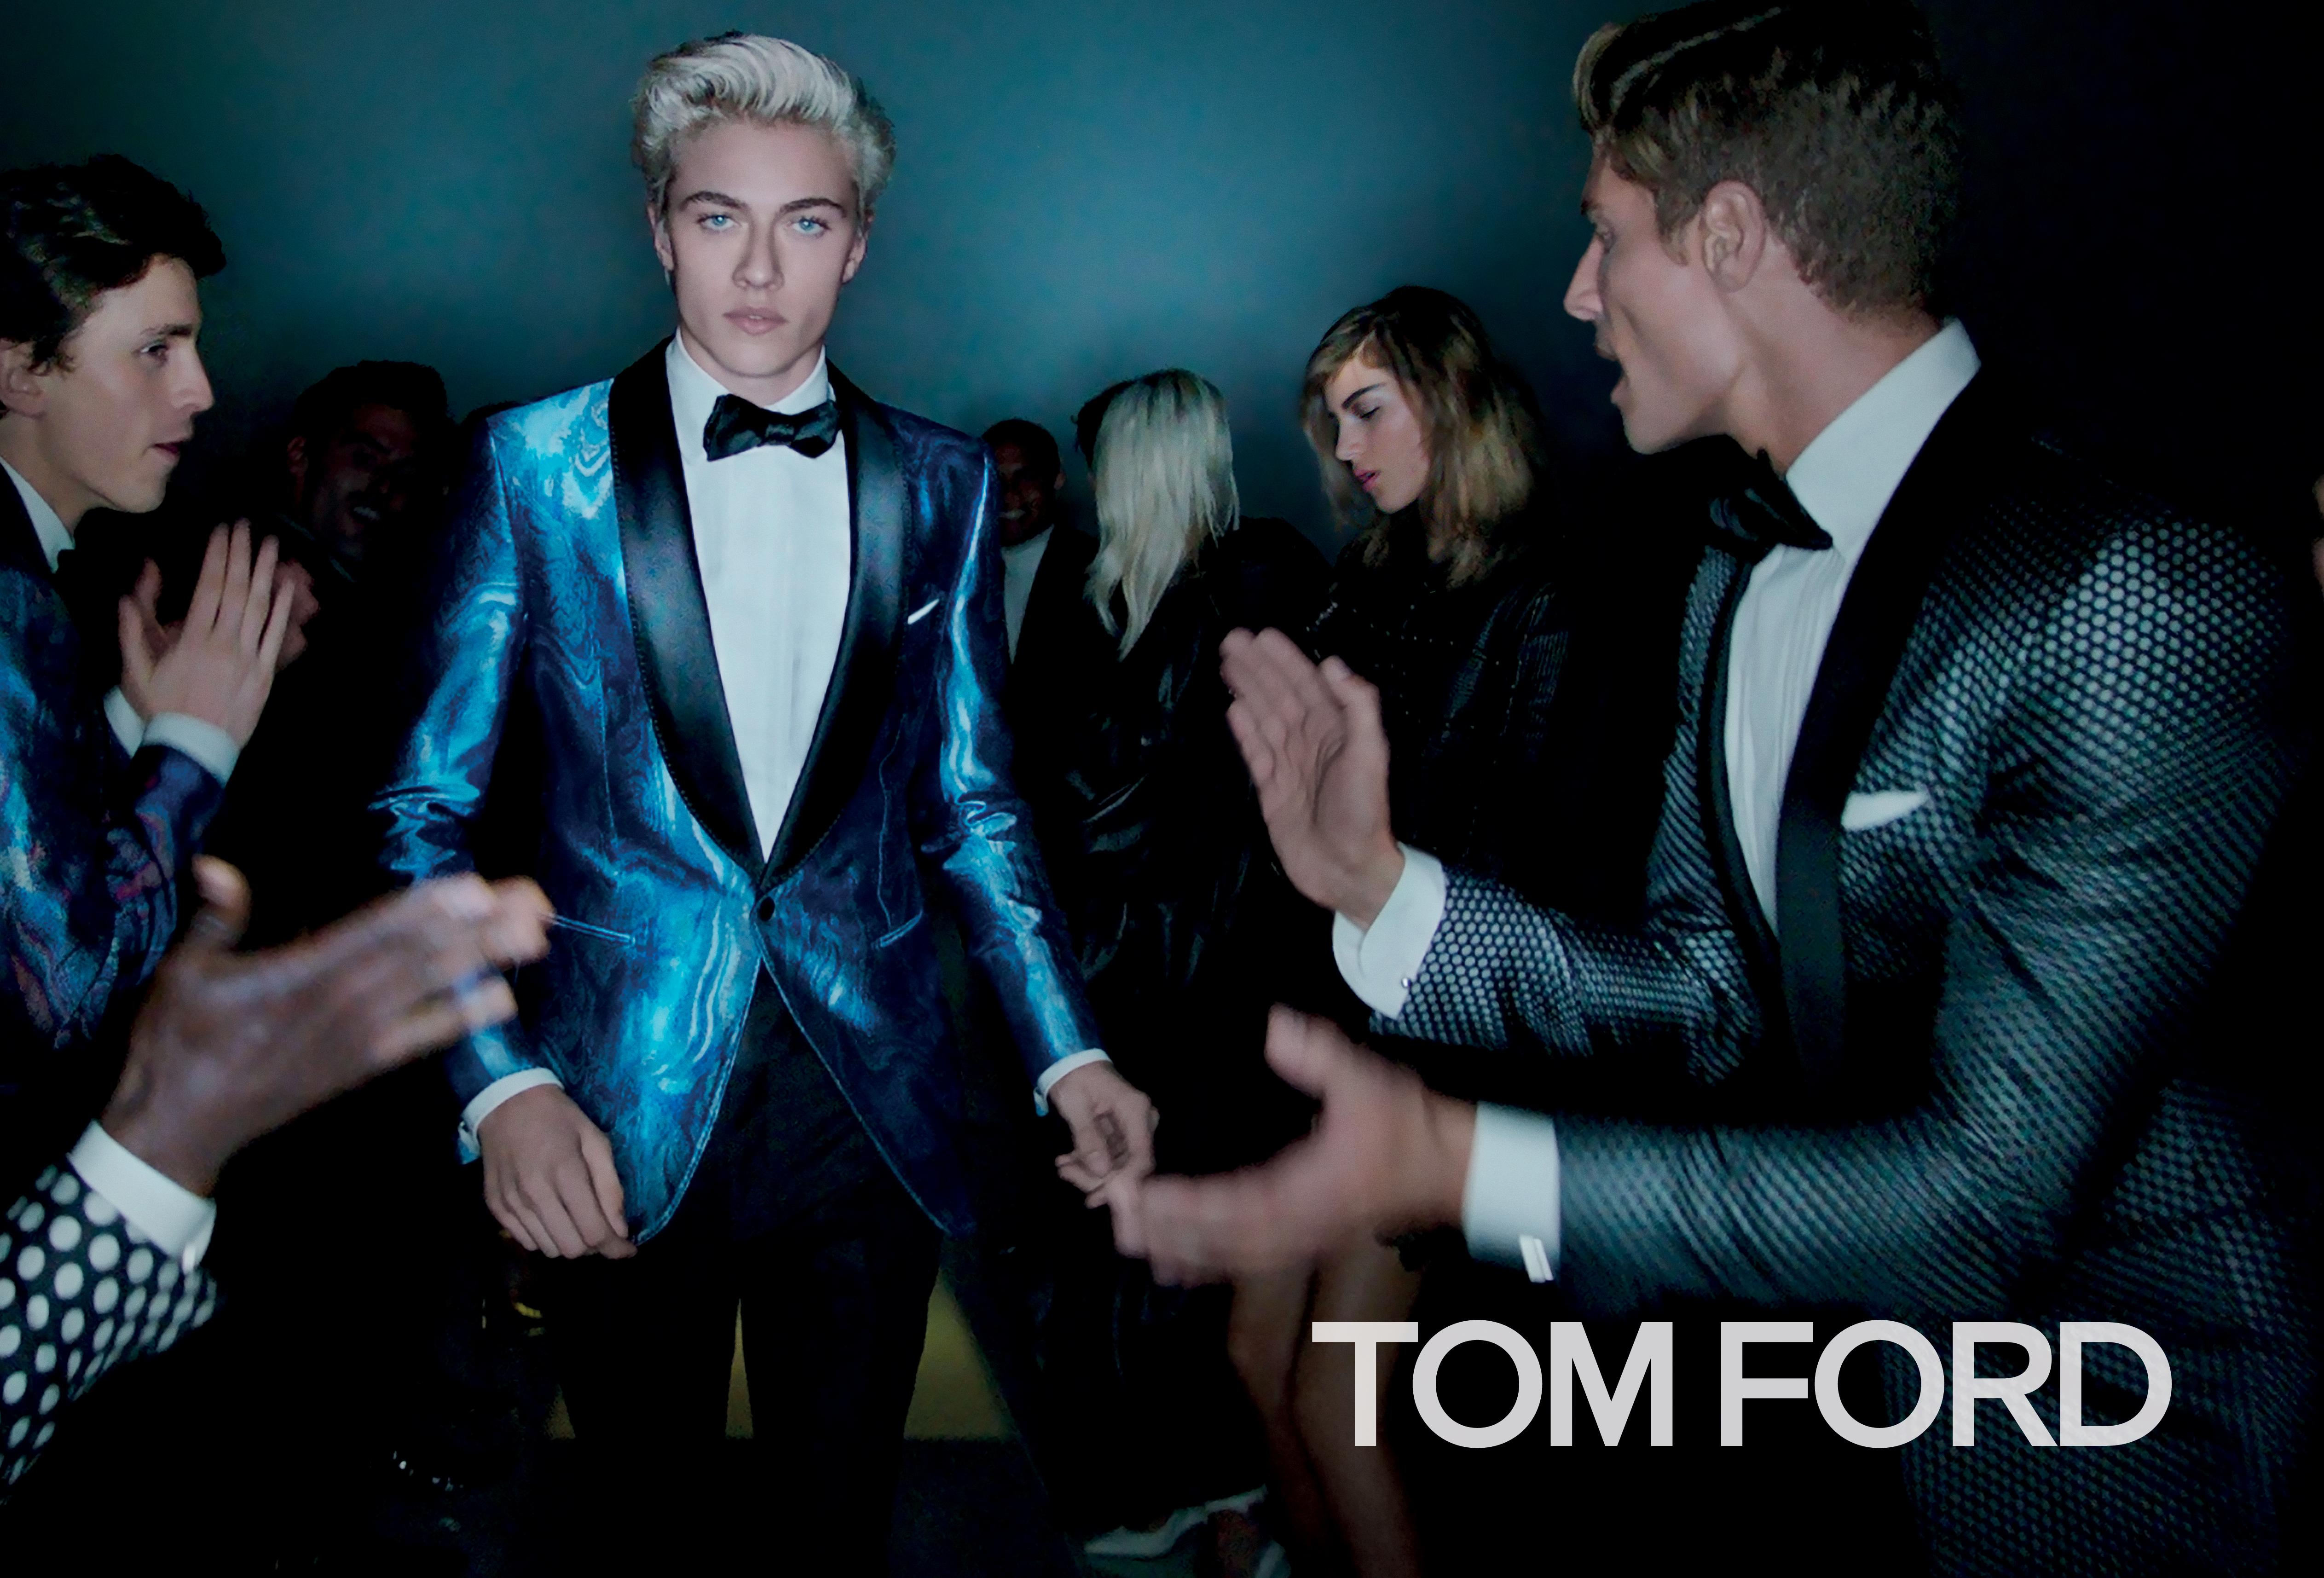 Lucky Blue Smith Shows His Best Moves for Tom Ford's Spring Ads